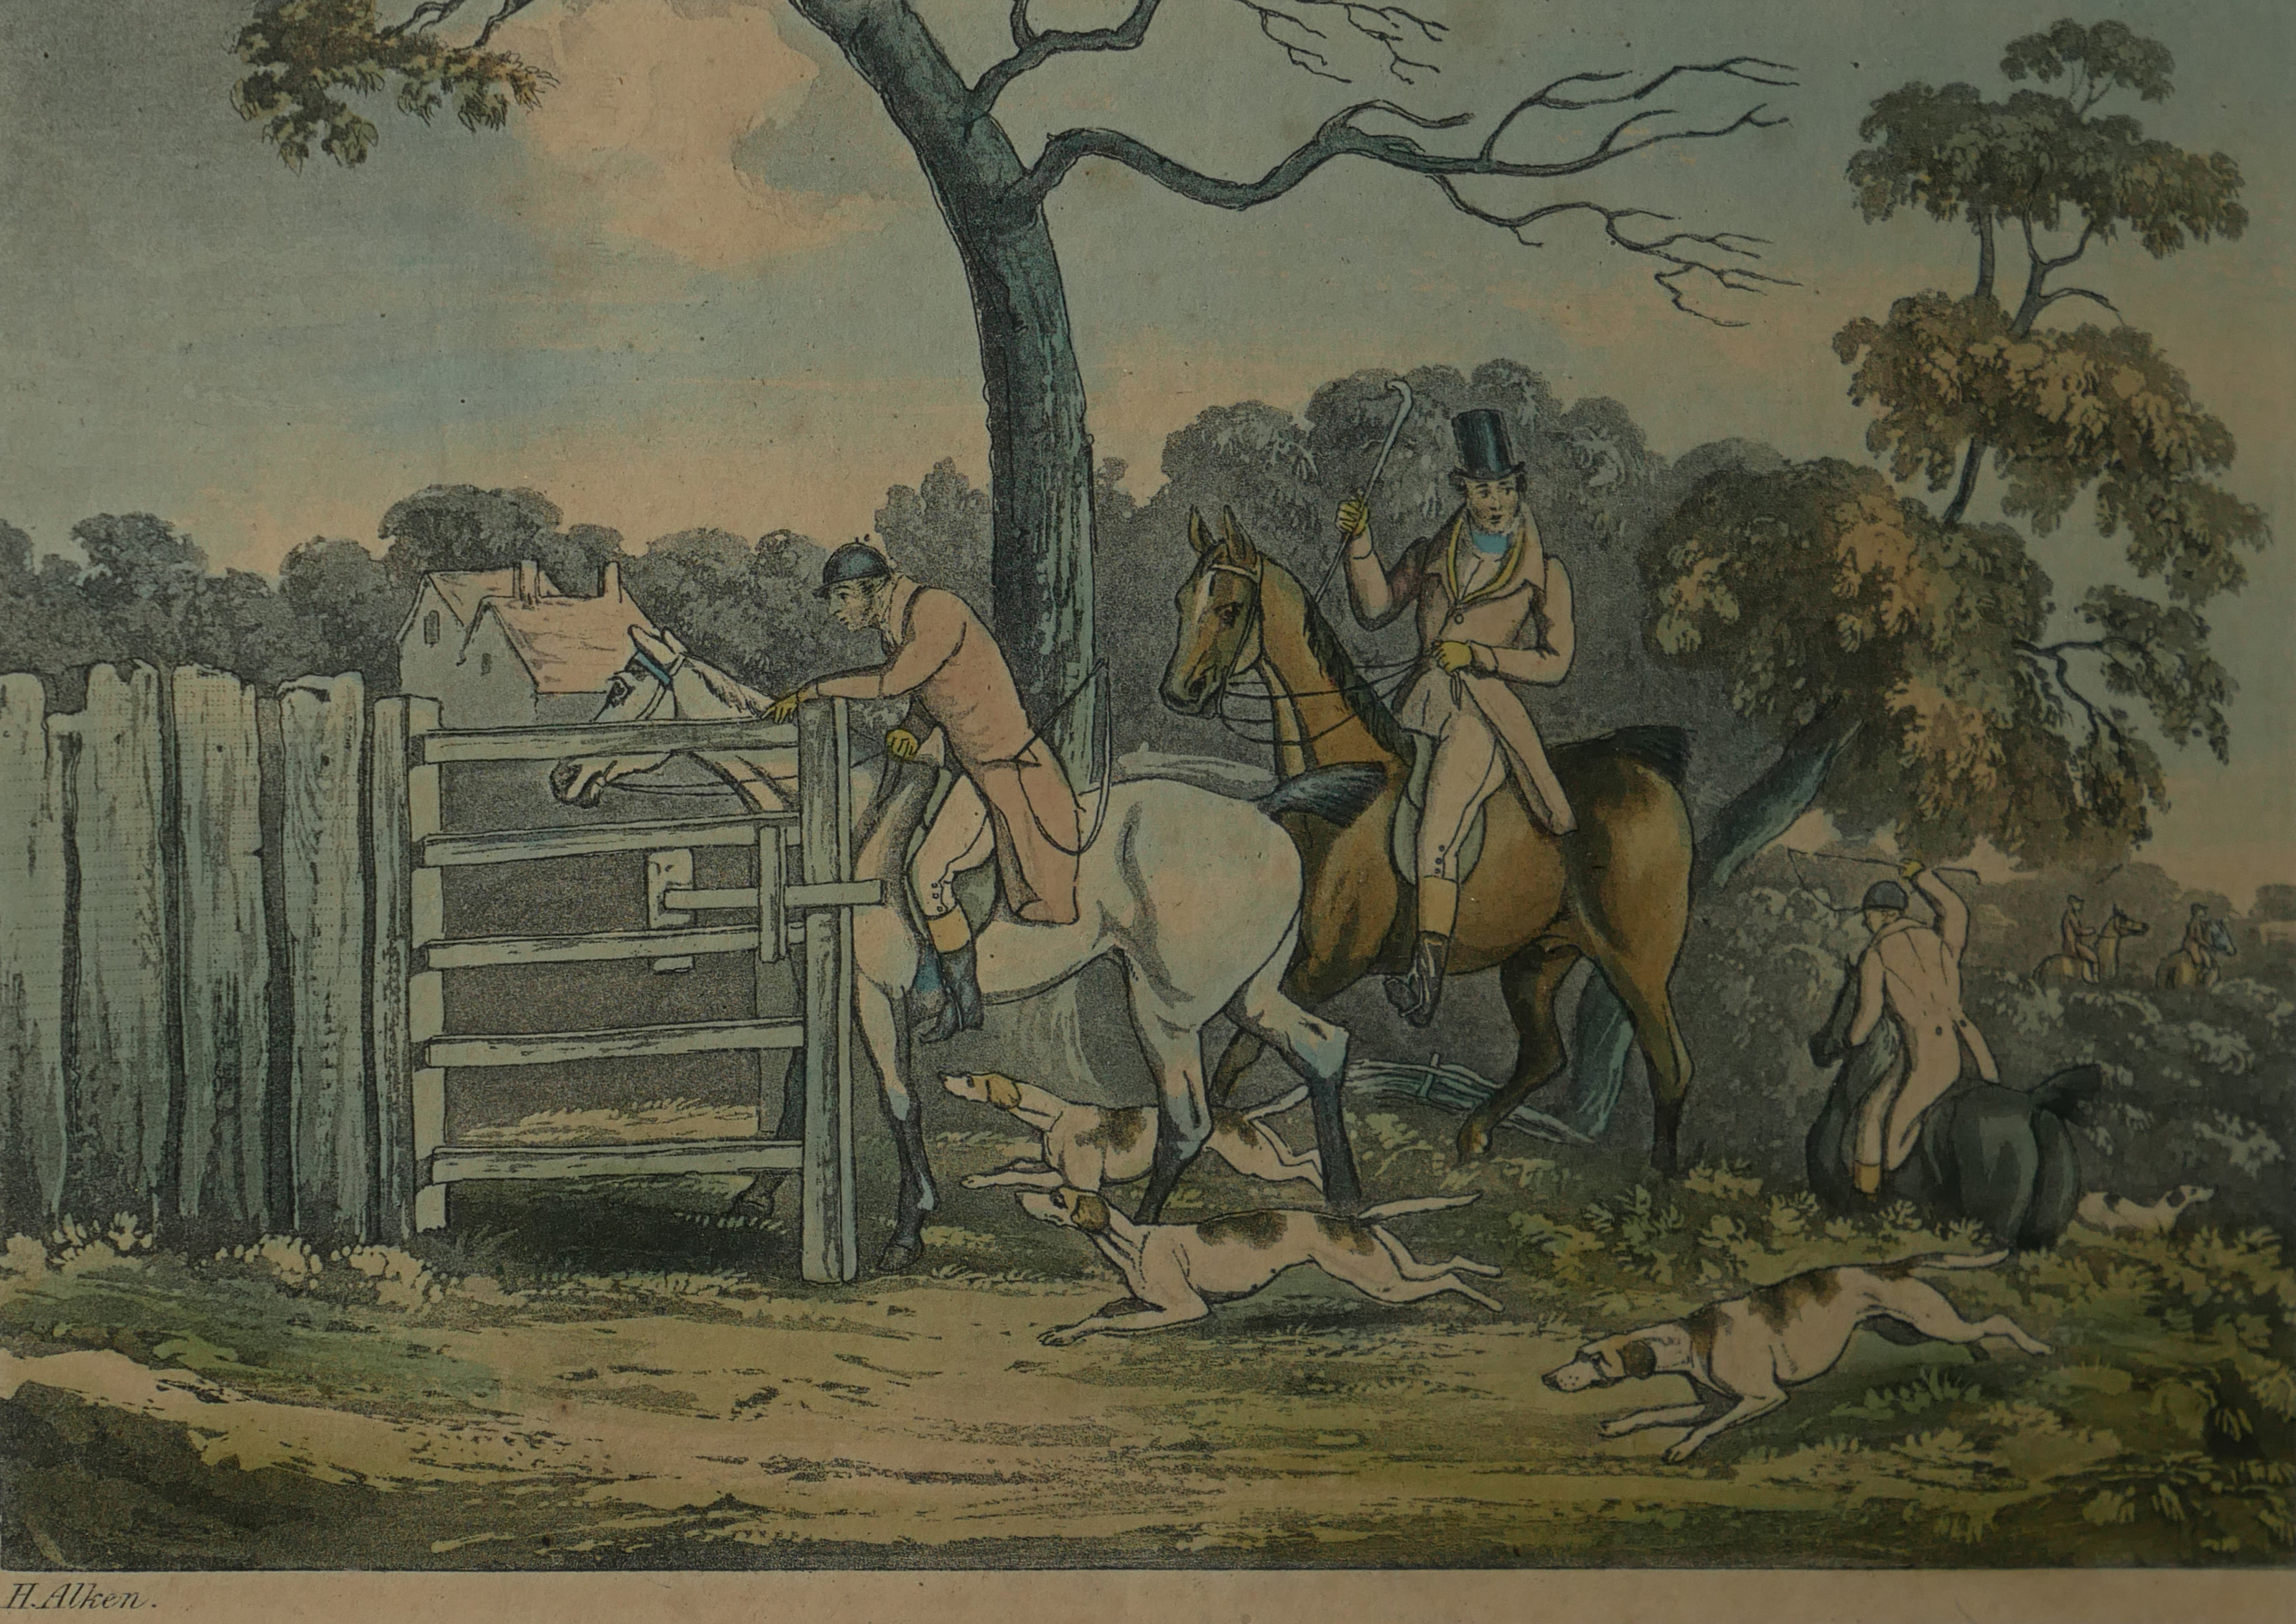 A COLLECTION OF SPORTING COLOURED ENGRAVINGS To include a scene Ben Marshall - notions series,